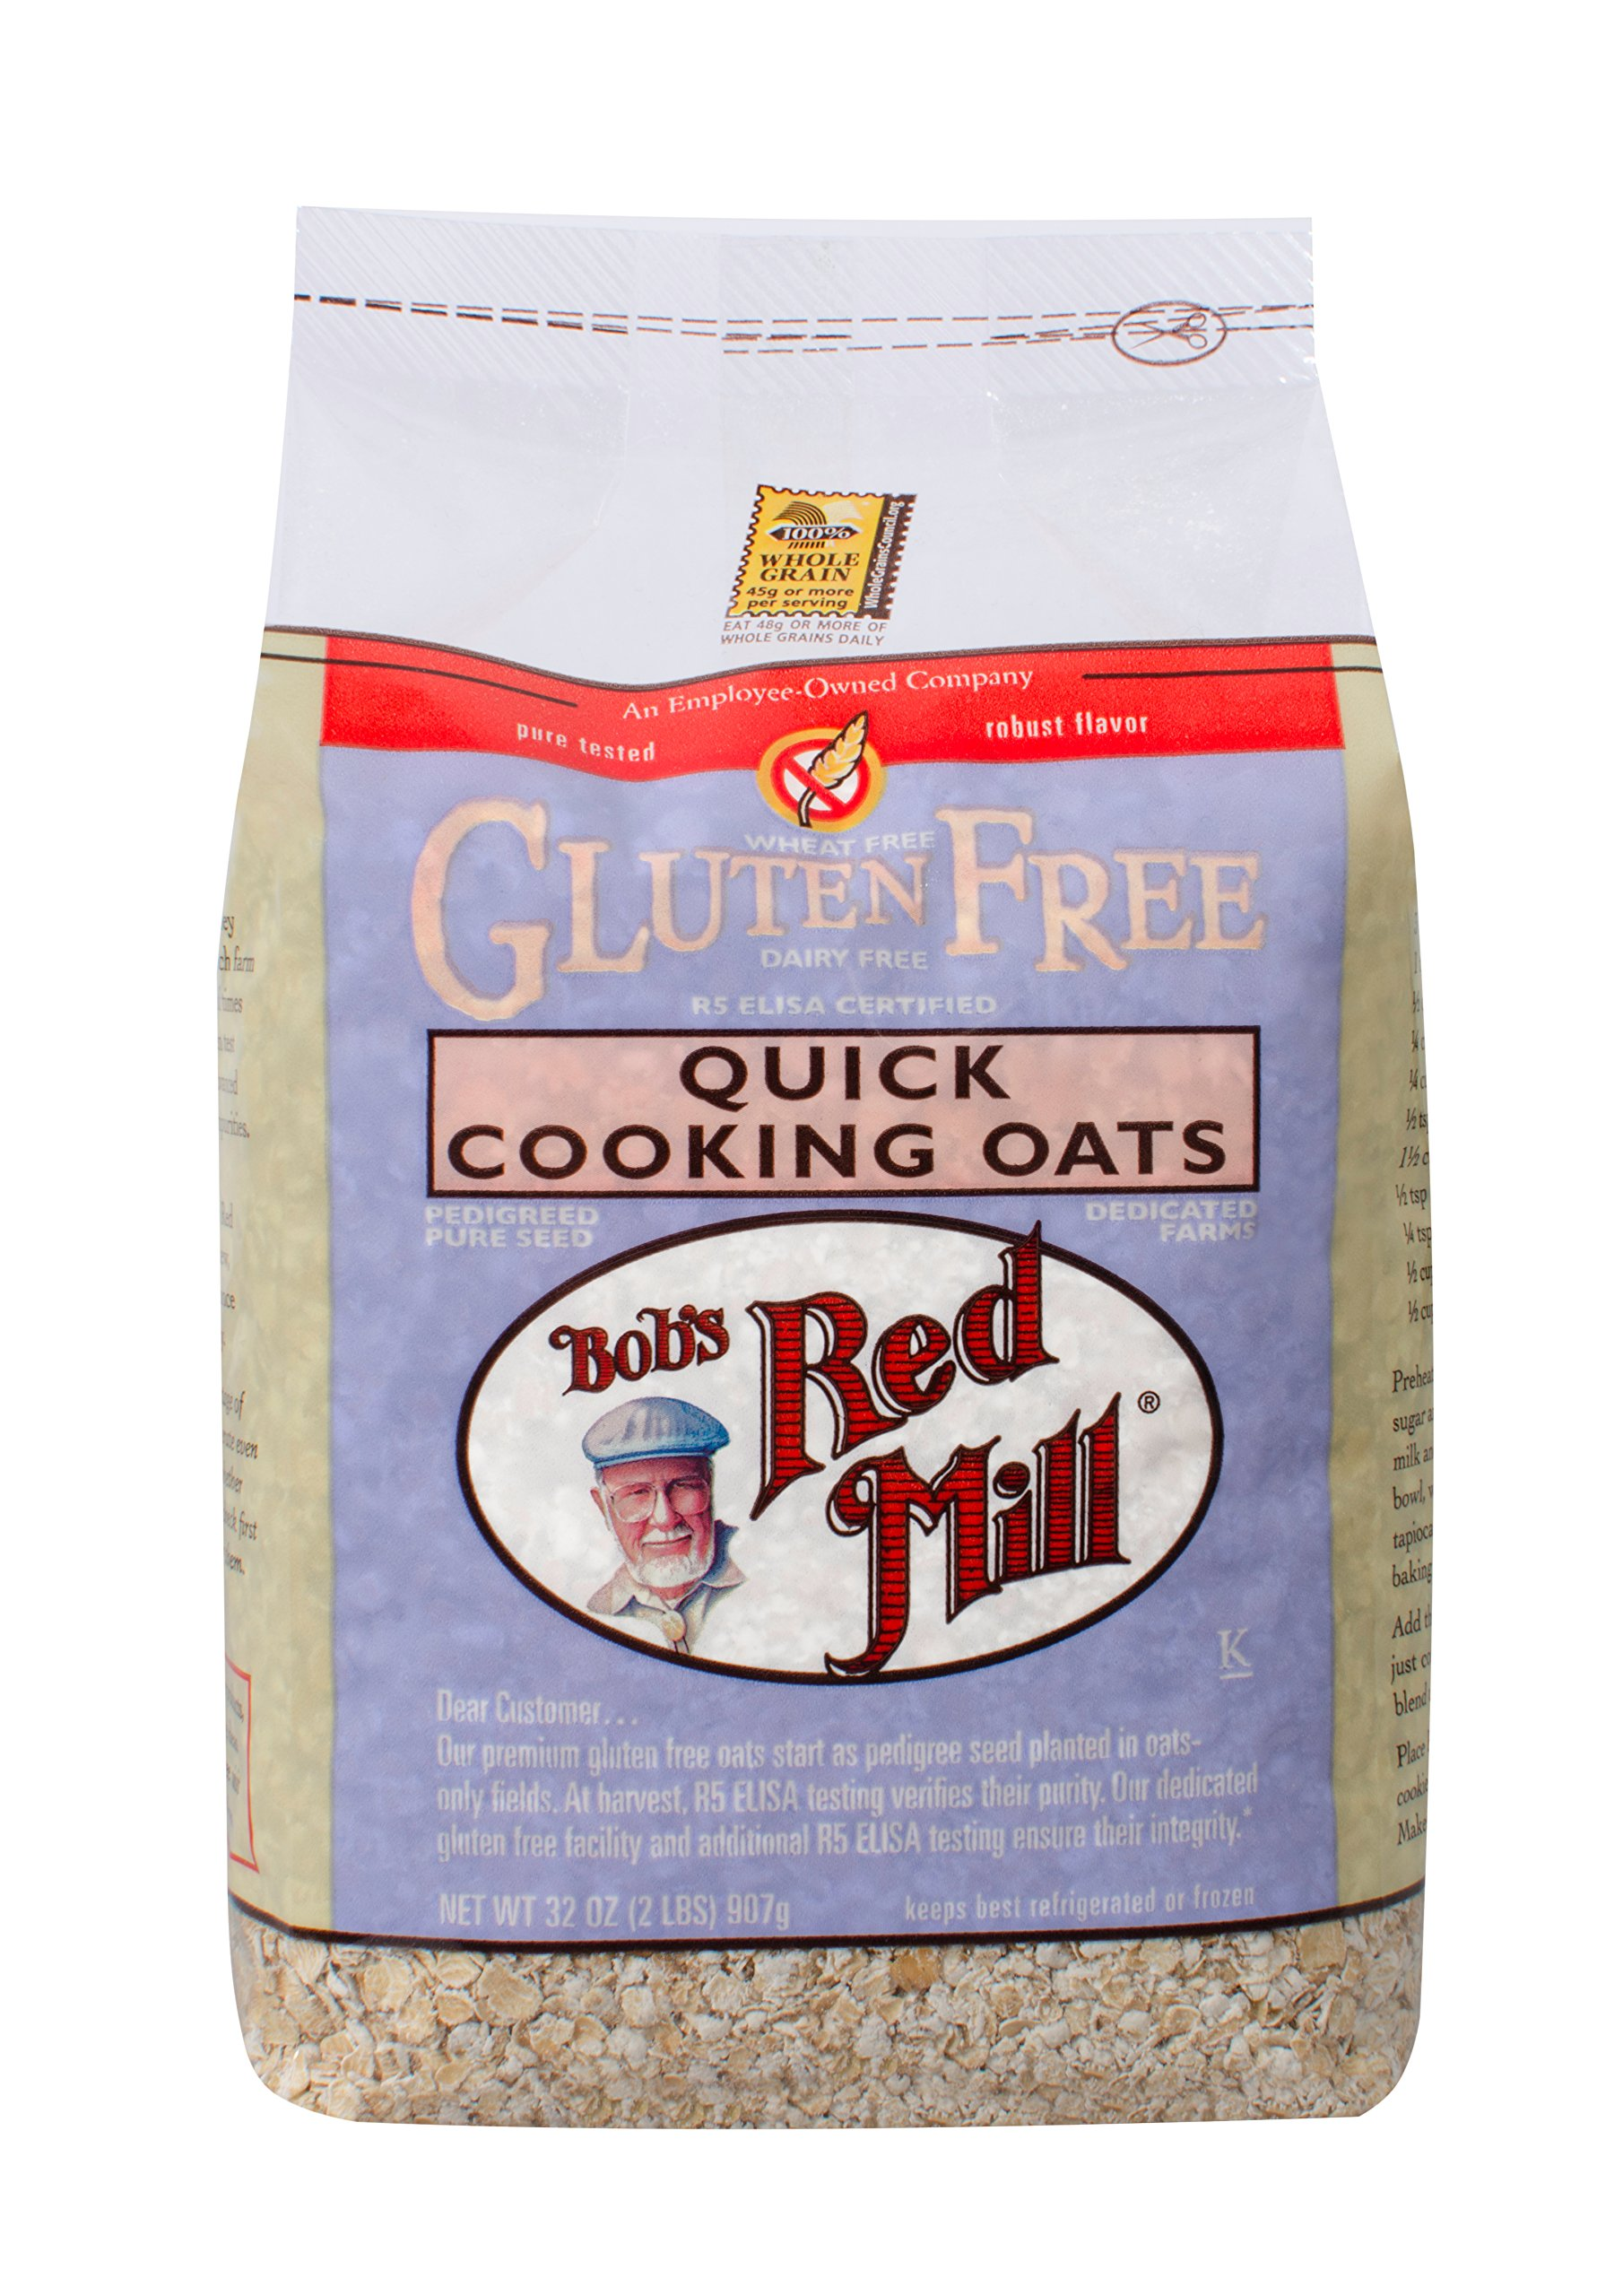 Bobs Red Mill Gluten Free Quick Cooking Oats, 2.13 Pound by Bob's Red Mill (Image #1)